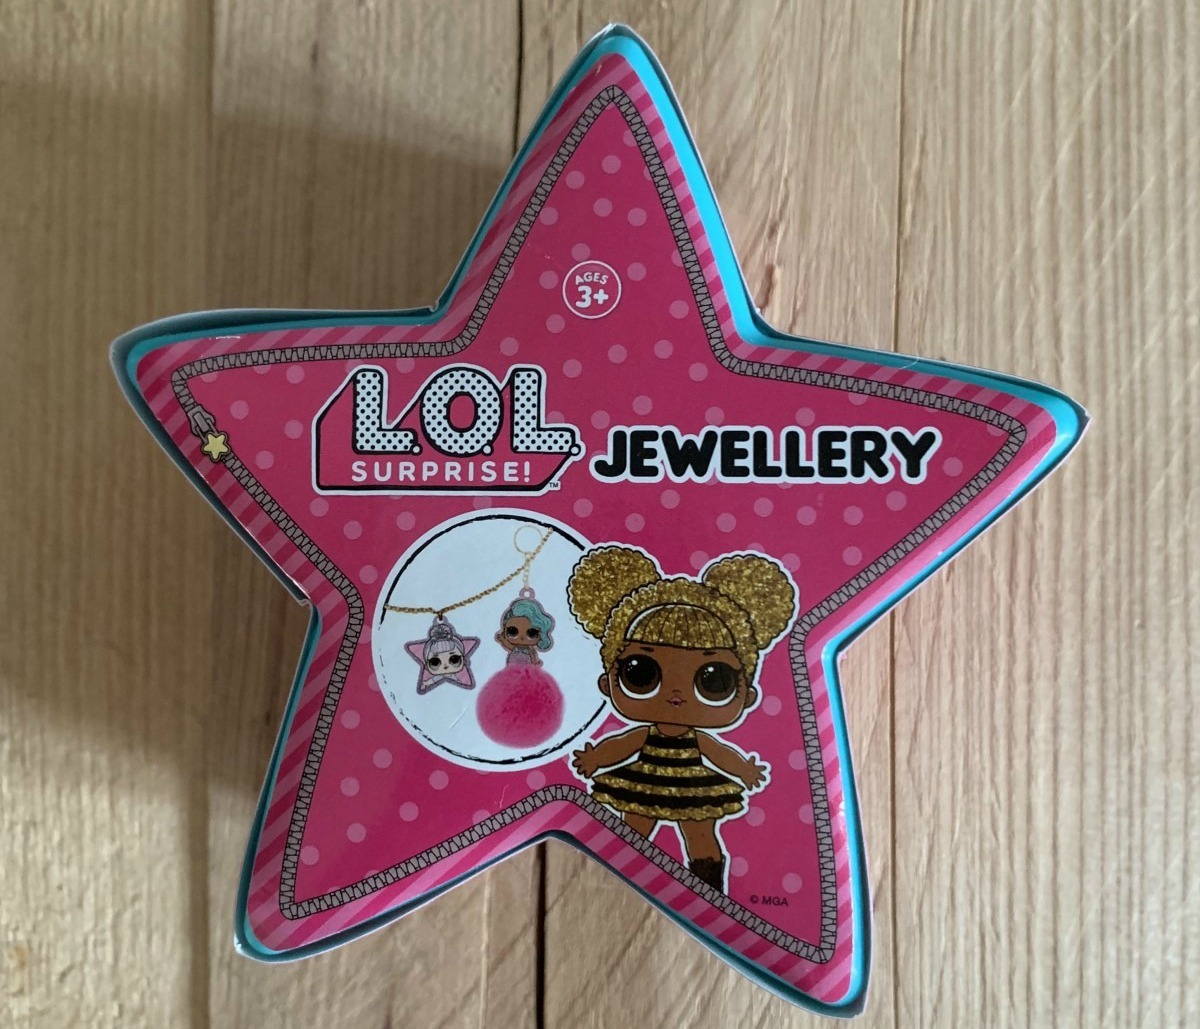 LOL verrassingsster Jewellery, lol verrassings ster